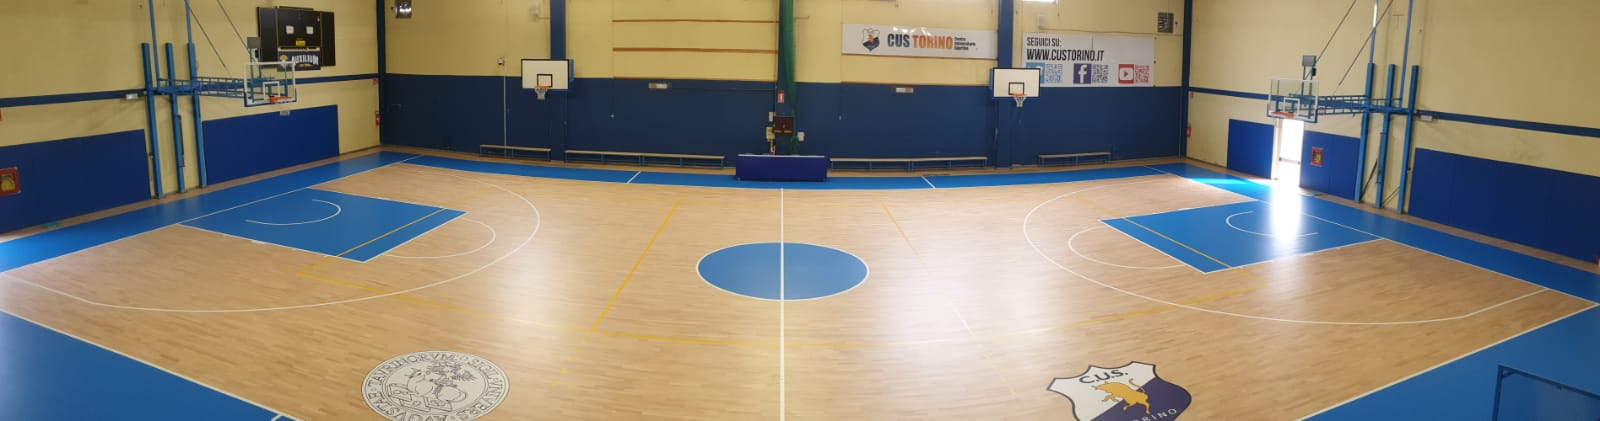 The new face of the Turin sports facility